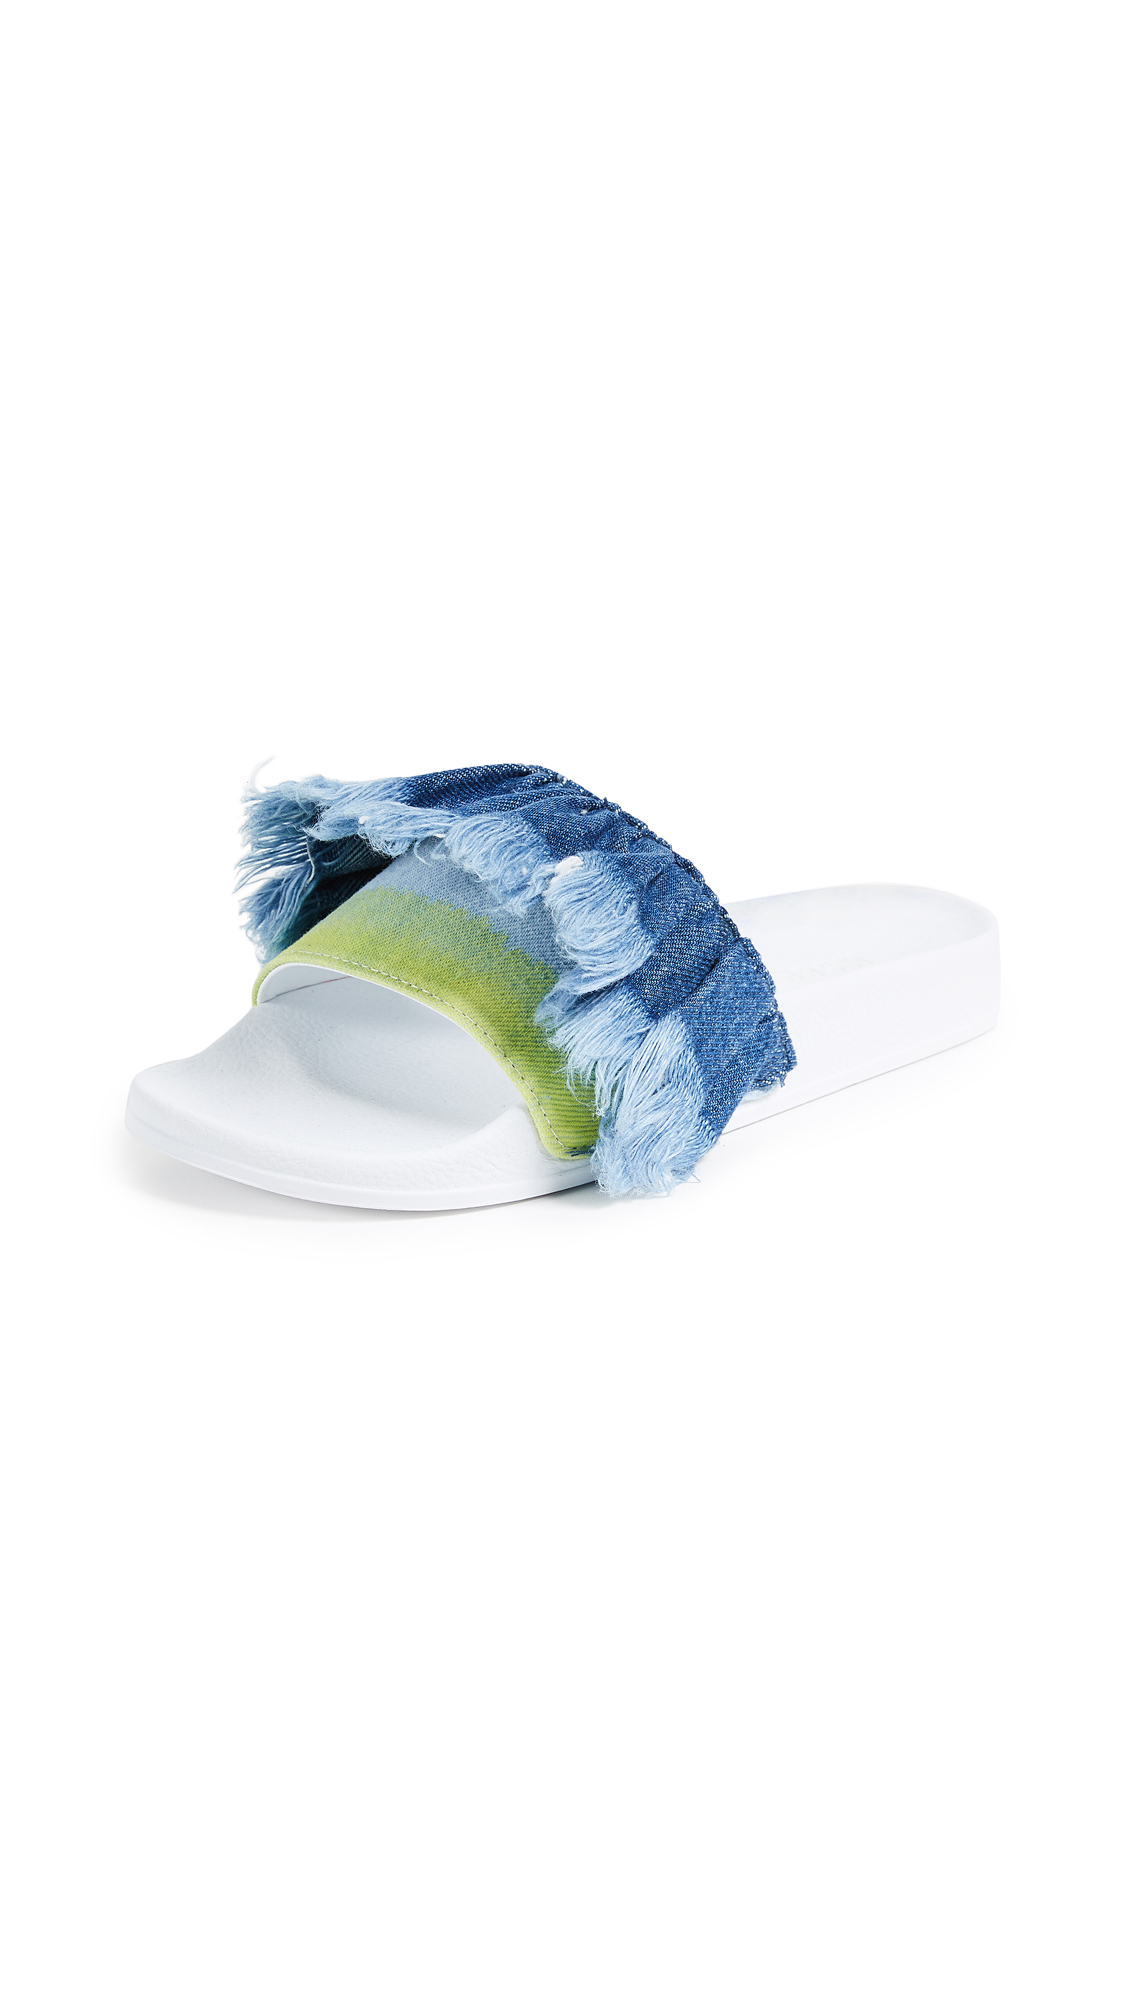 MSGM Tie Dye Pool Slides - Dark Denim/Yellow